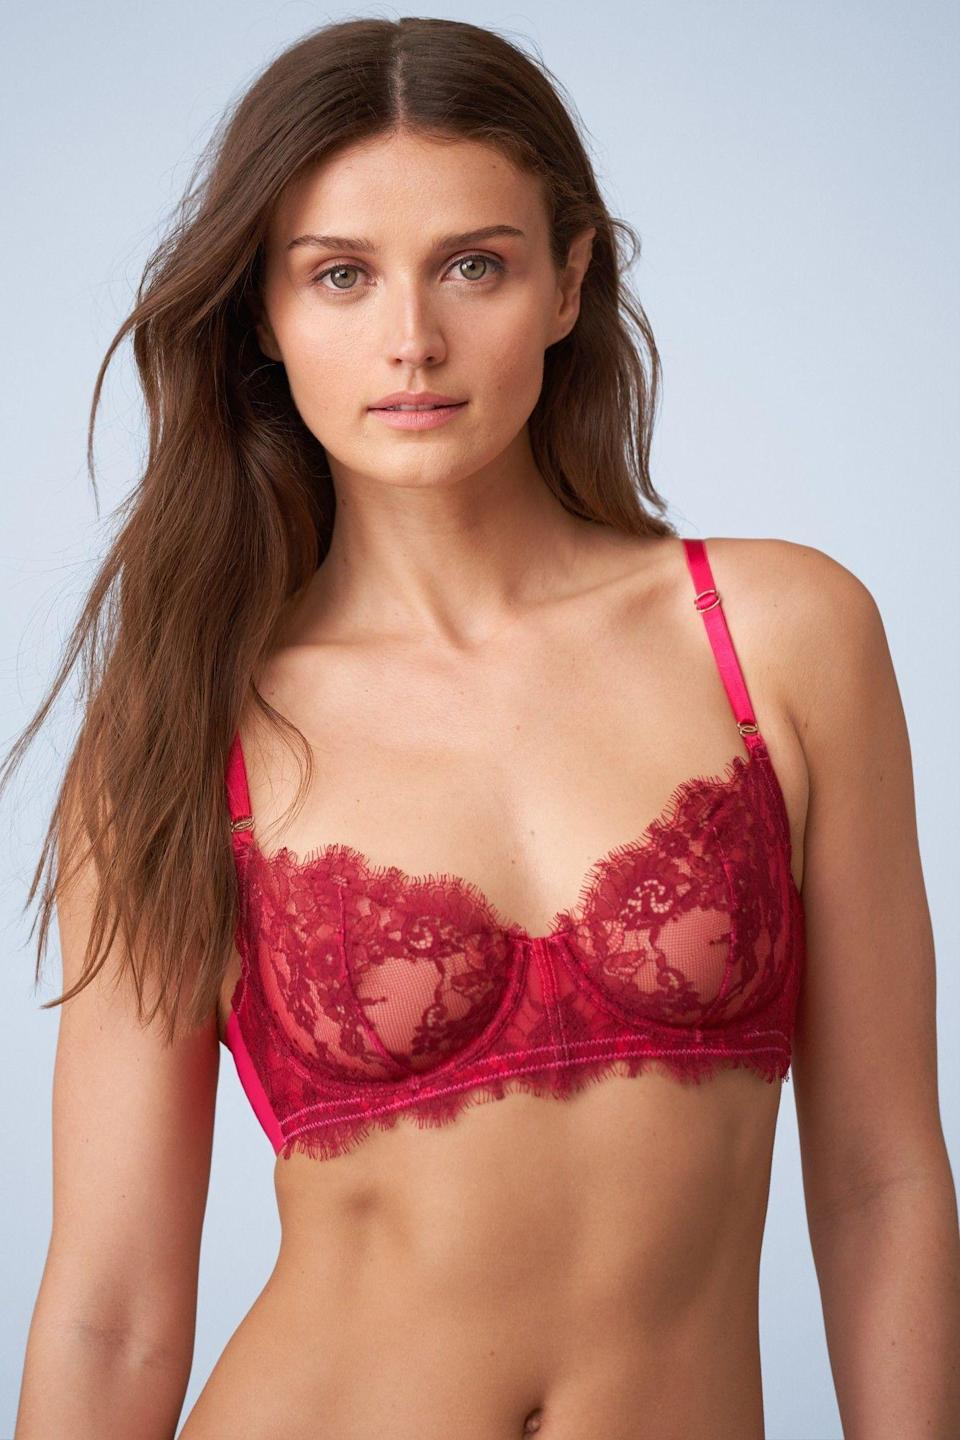 """<p><strong>Skarlett Blue</strong></p><p>skarlettblue.com</p><p><strong>$64.00</strong></p><p><a href=""""https://www.skarlettblue.com/entice-balconette-bra-324143?gclid=CjwKCAiA8K7uBRBBEiwACOm4dzEzSmtRo5pX-Bx4b1m95GO91zkmTMPCIgZqzq4aZ8zjF30lRm-rNBoCOT8QAvD_BwE#92=248&155=118&156=111"""" rel=""""nofollow noopener"""" target=""""_blank"""" data-ylk=""""slk:Shop Now"""" class=""""link rapid-noclick-resp"""">Shop Now</a></p><p>I own this bra and trust me, it's super delicate and soft. Skarlett Blue has everything from your daily-use essentials to lacey pieces you buy when you just want to treat yoself. </p>"""